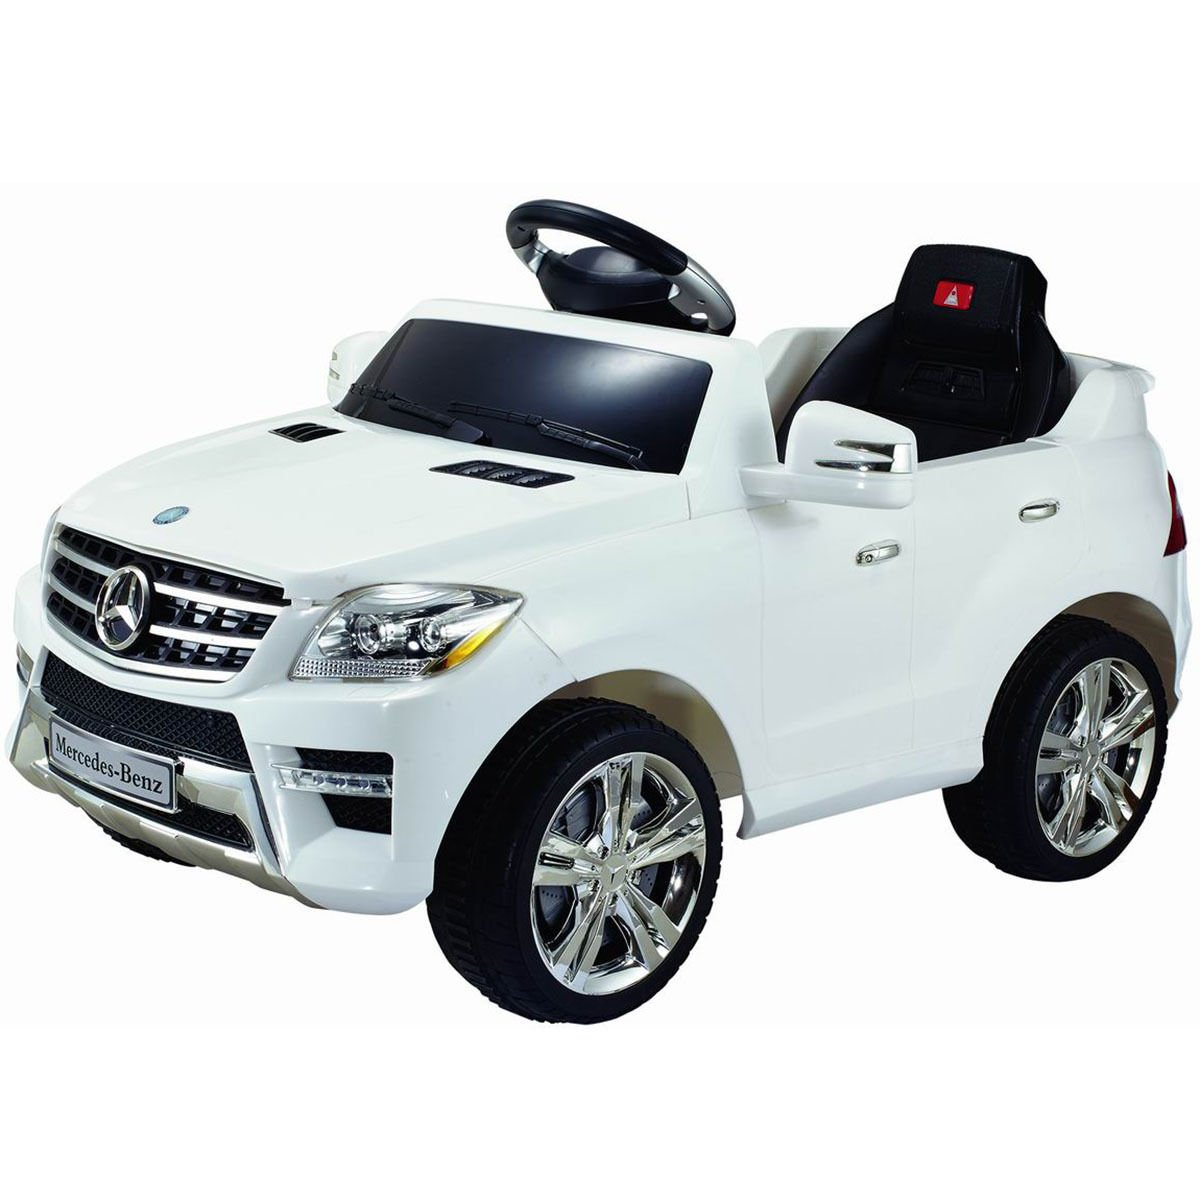 Costzon White Mercedes Benz ML350 6V Electric Kids Ride On Car Licensed MP3 RC Remote Control by Costzon